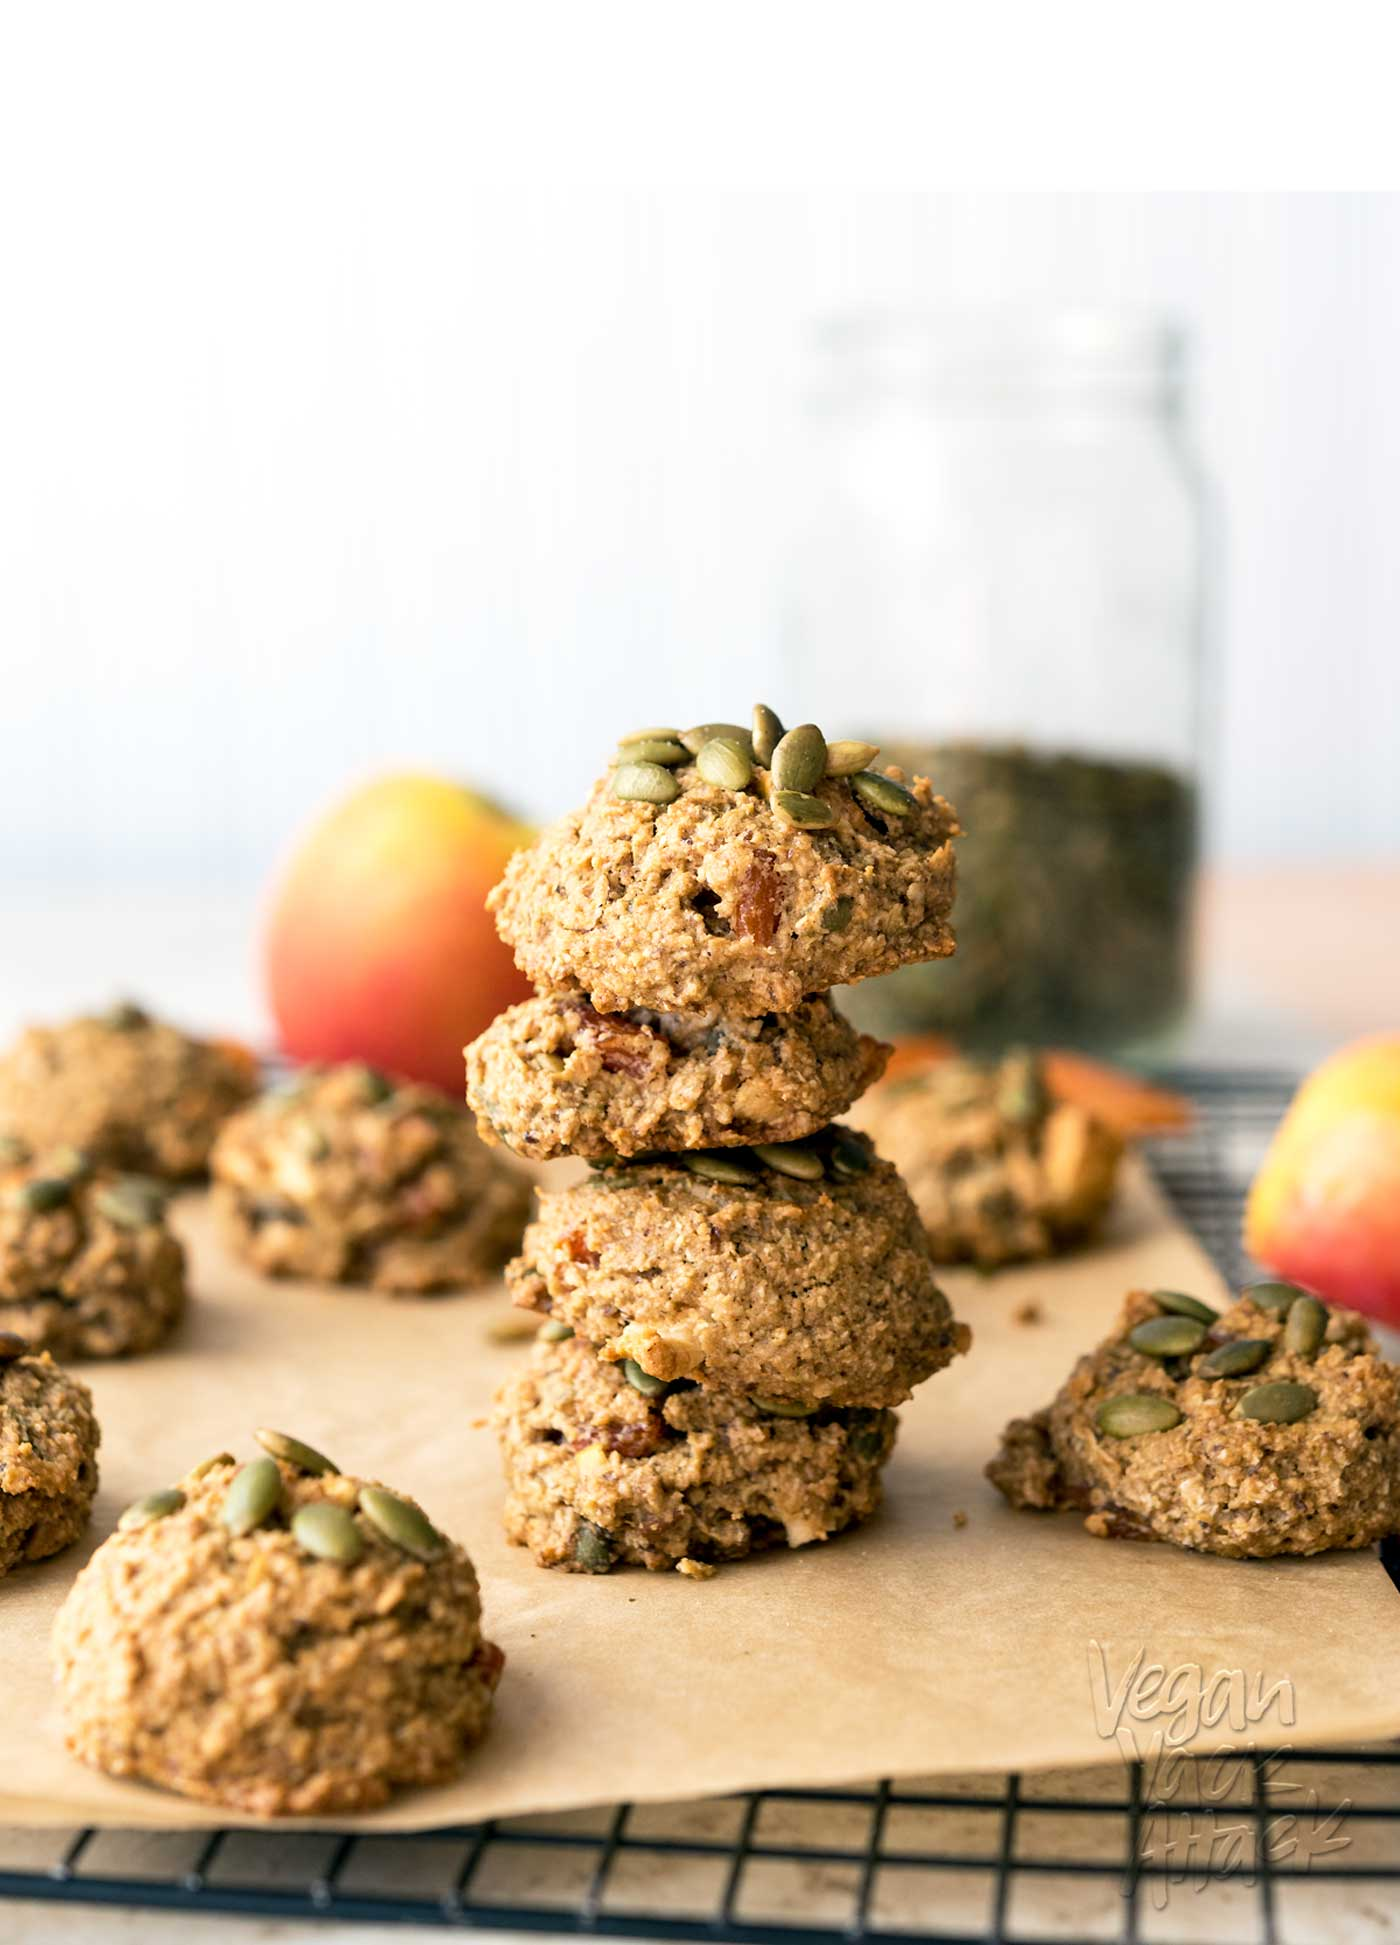 These Apple Apricot Quinoa Cookies are filled with fruity goodness and make great snacks! Made with whole grains and quinoa flakes, to keep you satiated. #vegan #soyfree #nutfree